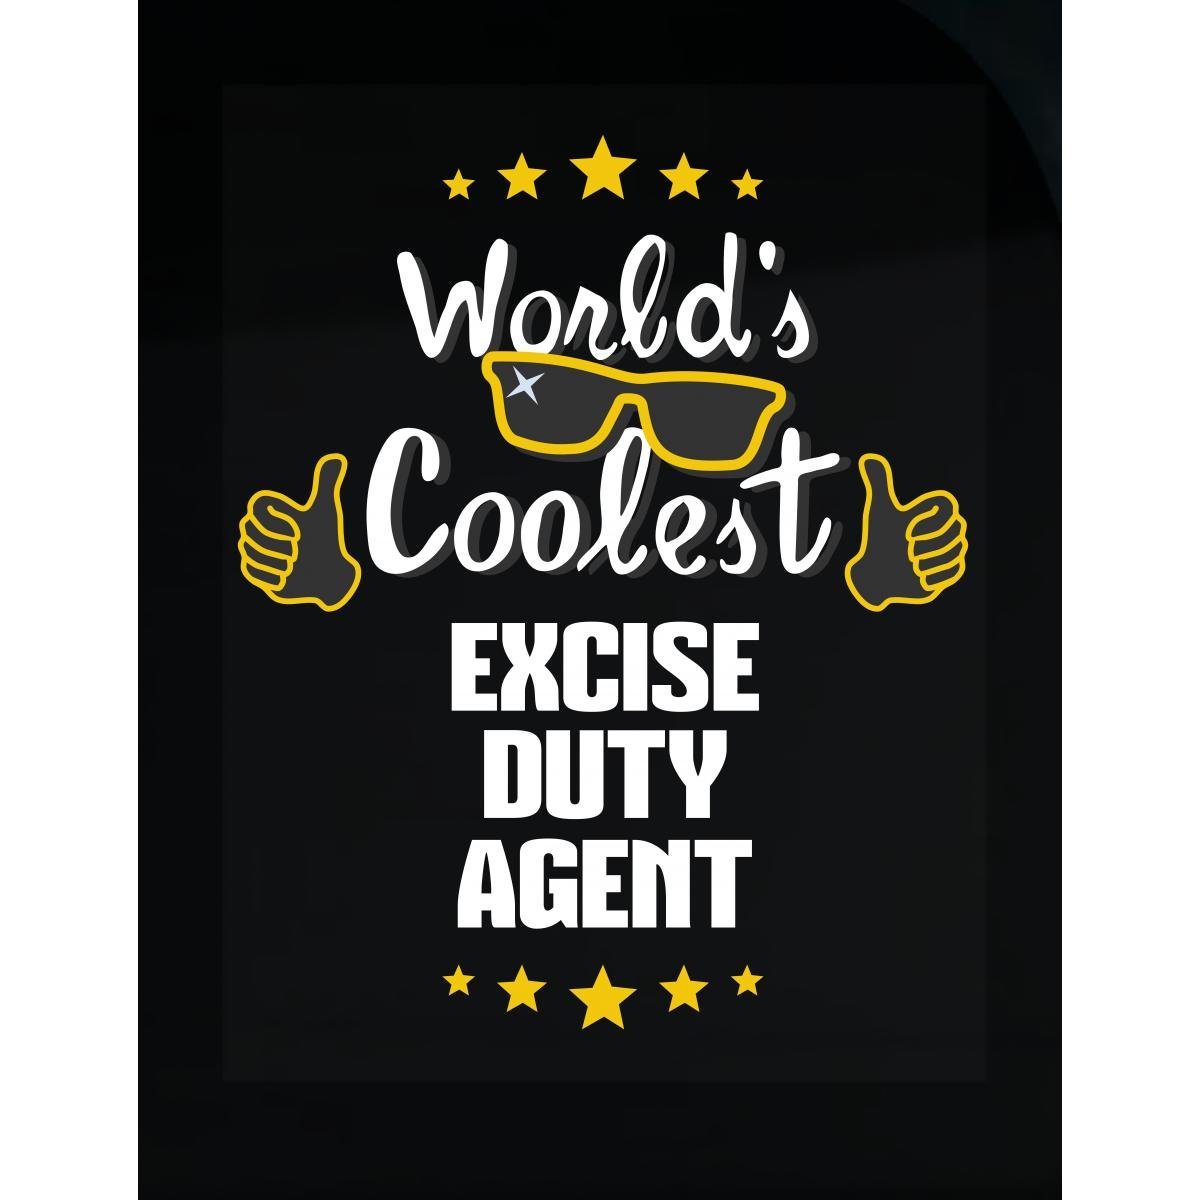 World's Coolest Excise Duty Agent - Sticker by This Gift Rocks !